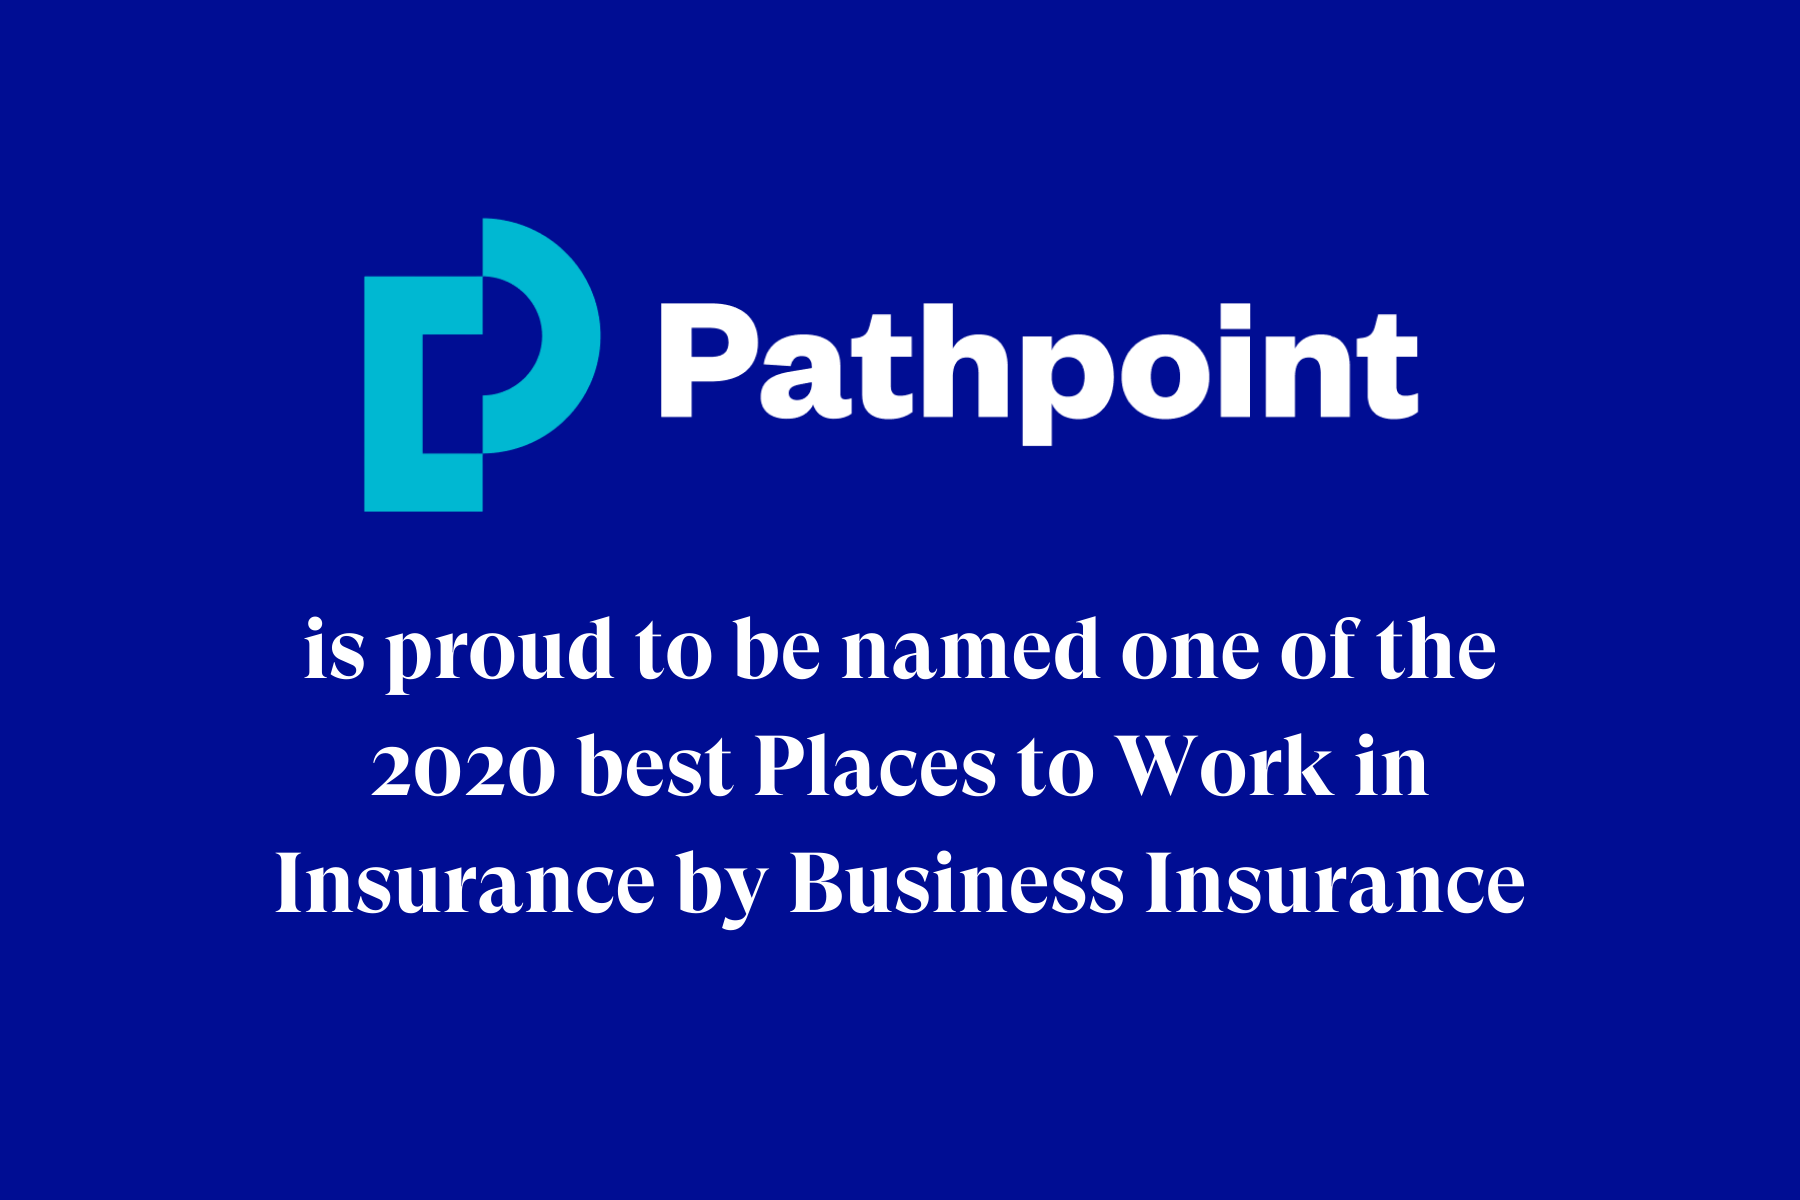 Pathpoint named one of the Best Places to Work in Insurance